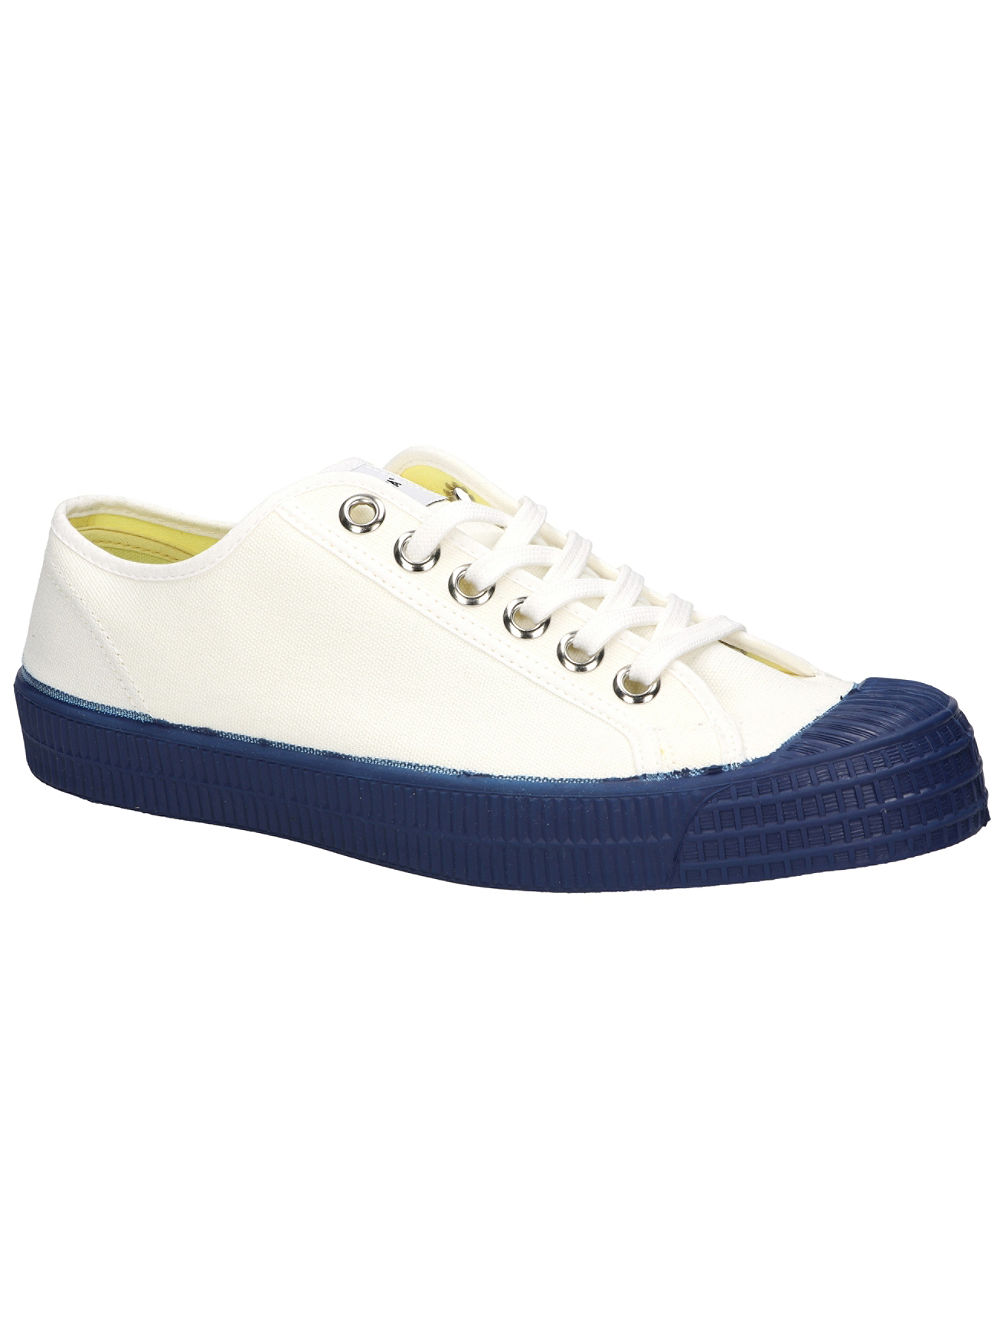 Star Master Color Sole Sneakers